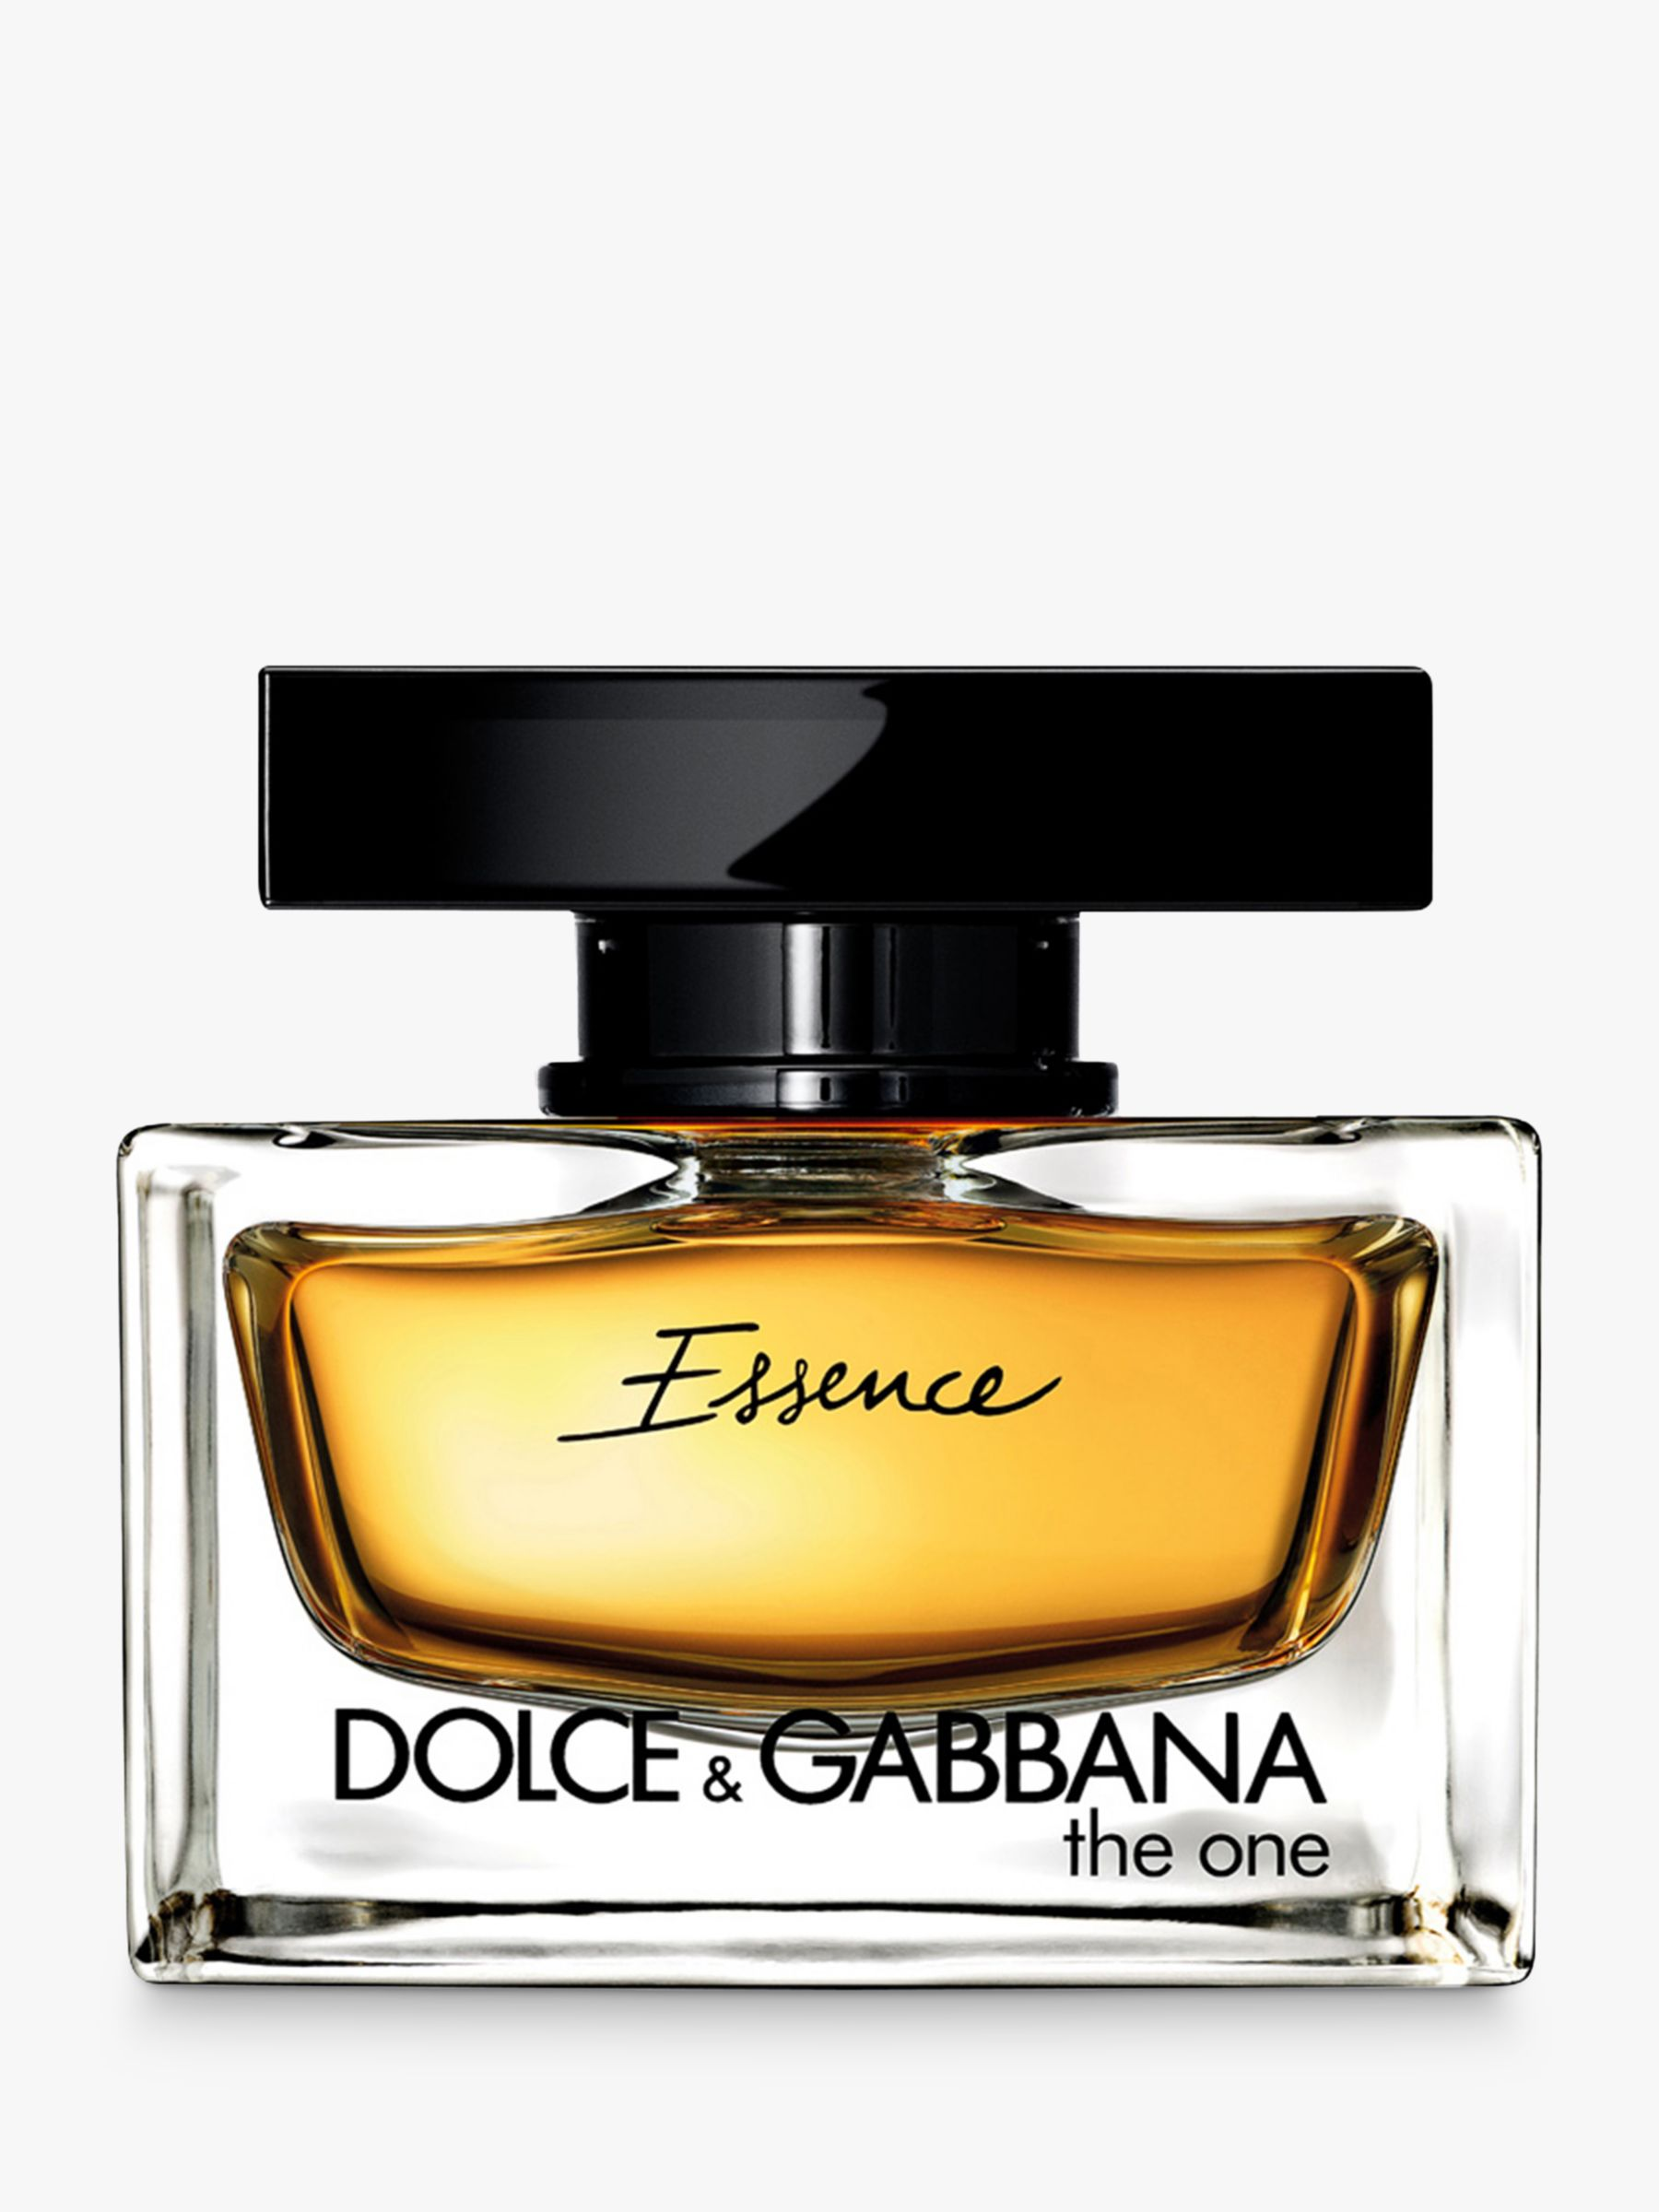 71289f6b Dolce & Gabbana The One Essence Eau de Parfum at John Lewis & Partners